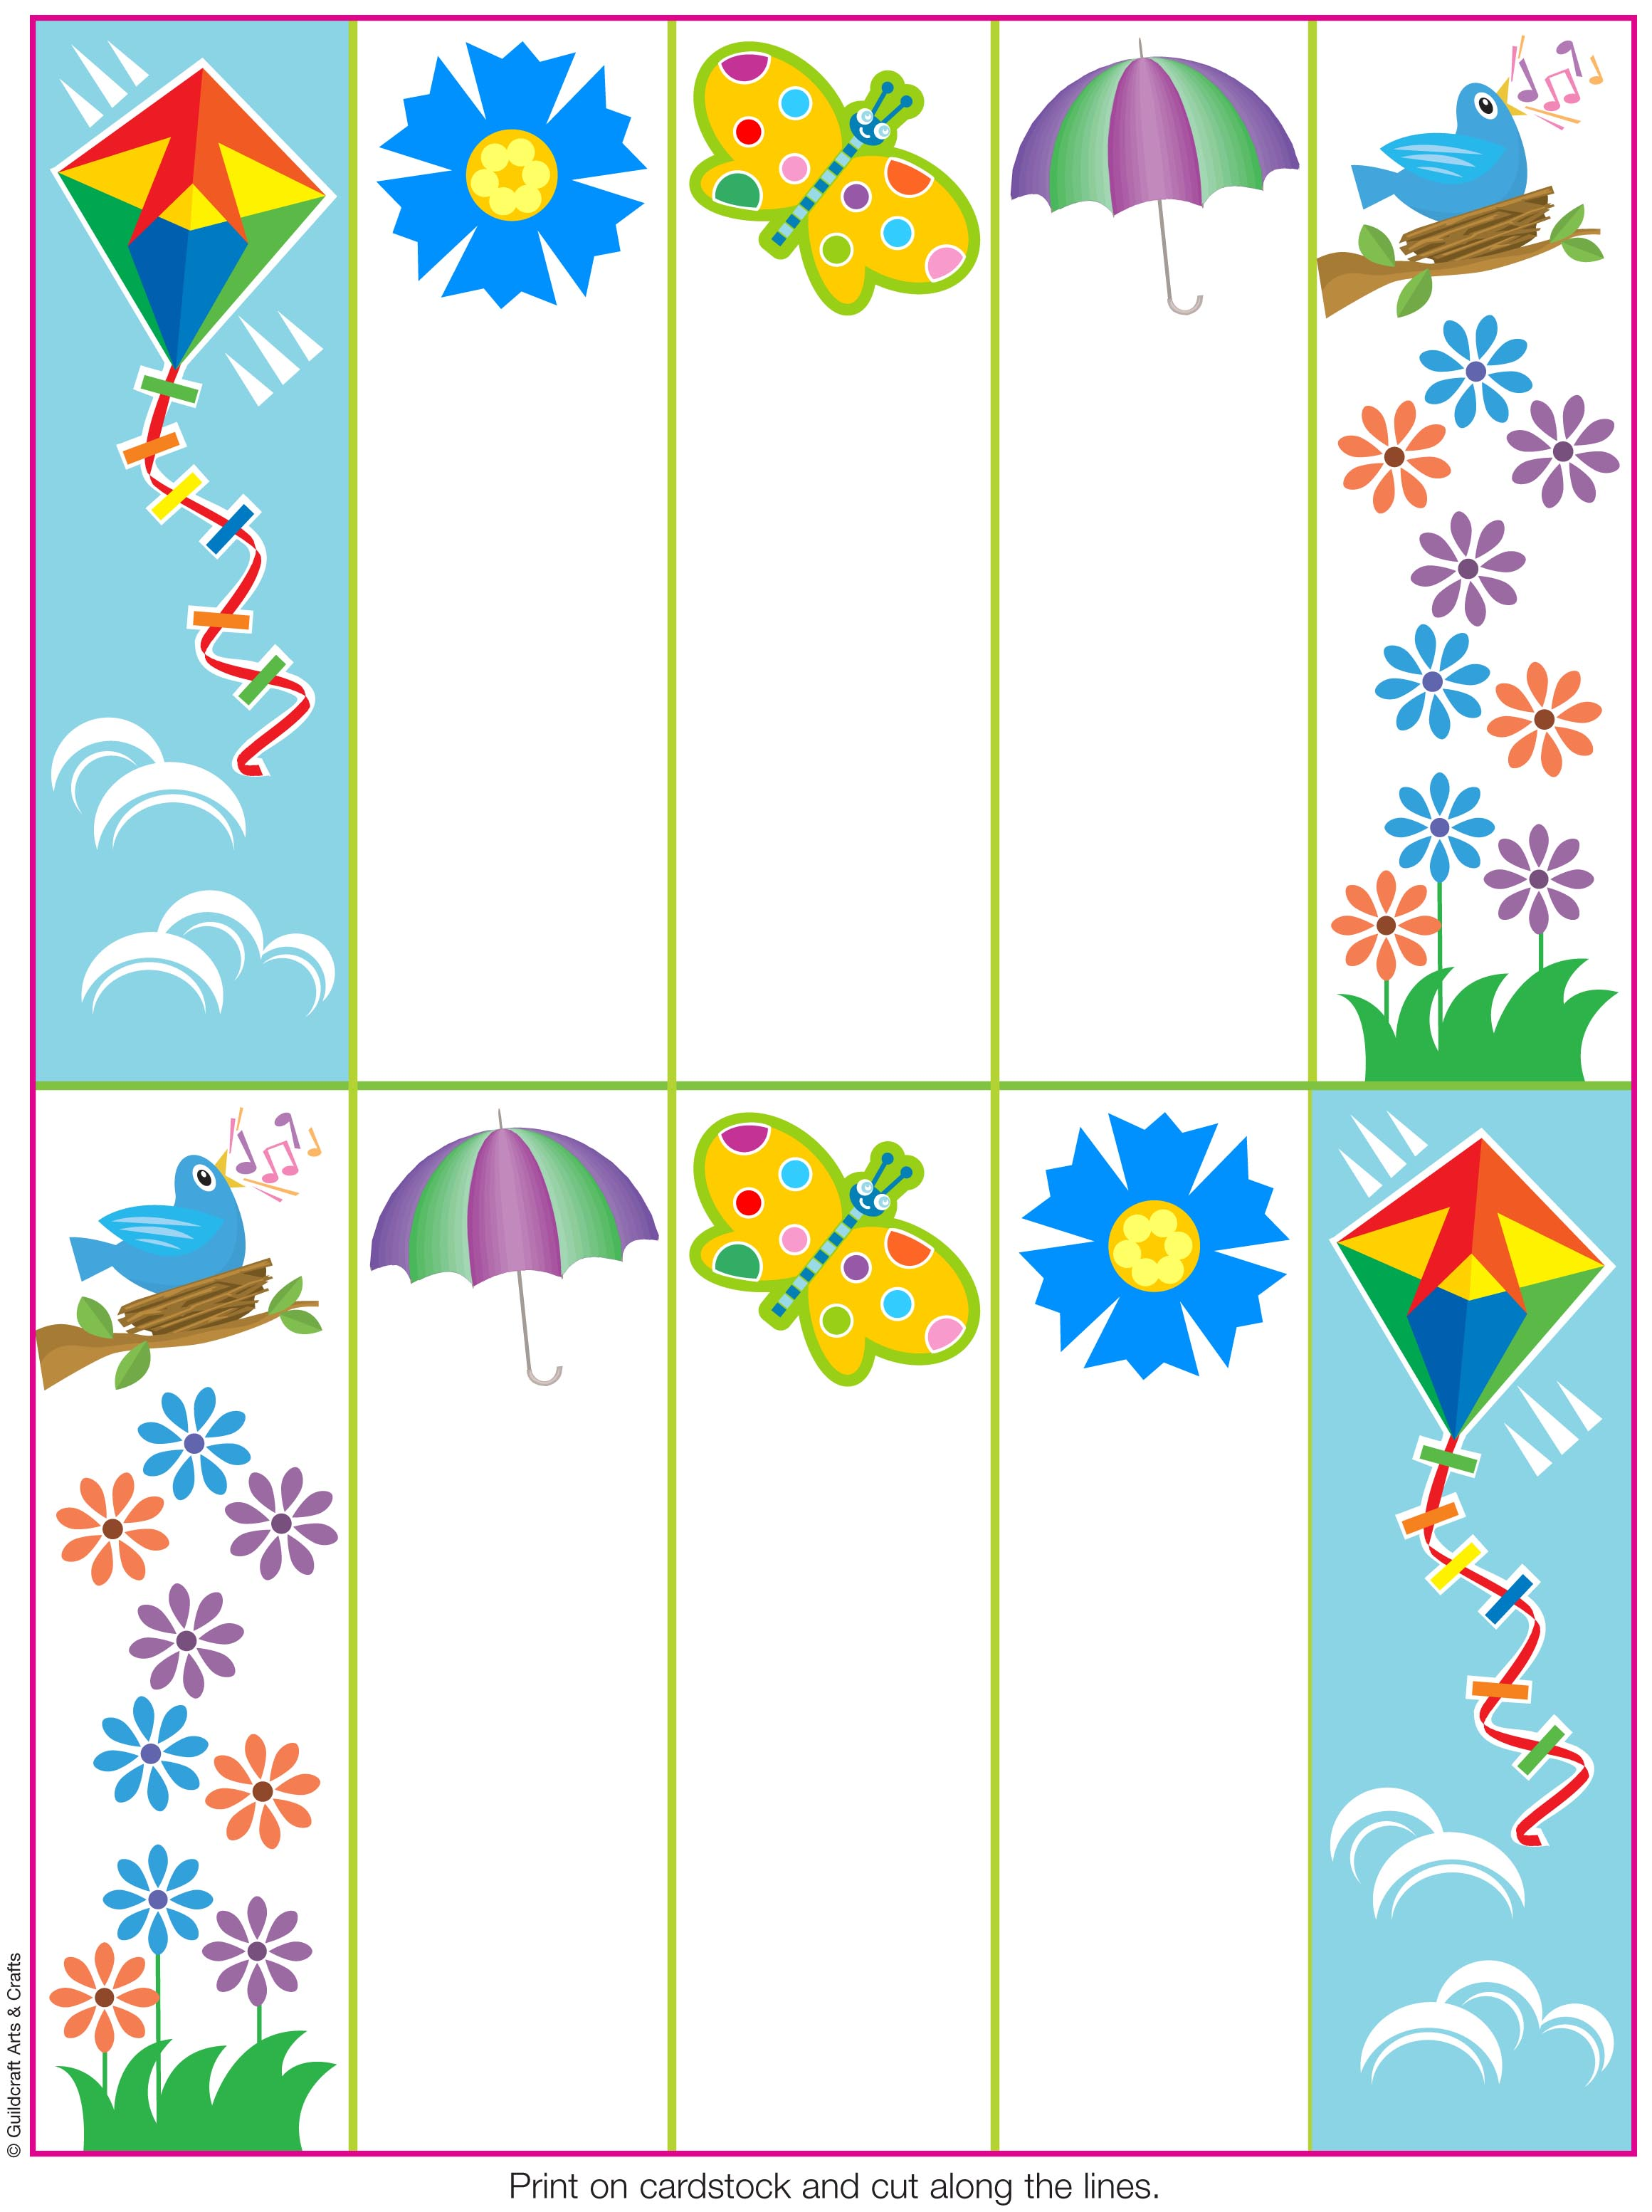 6 Images of Printable Spring Bookmarks